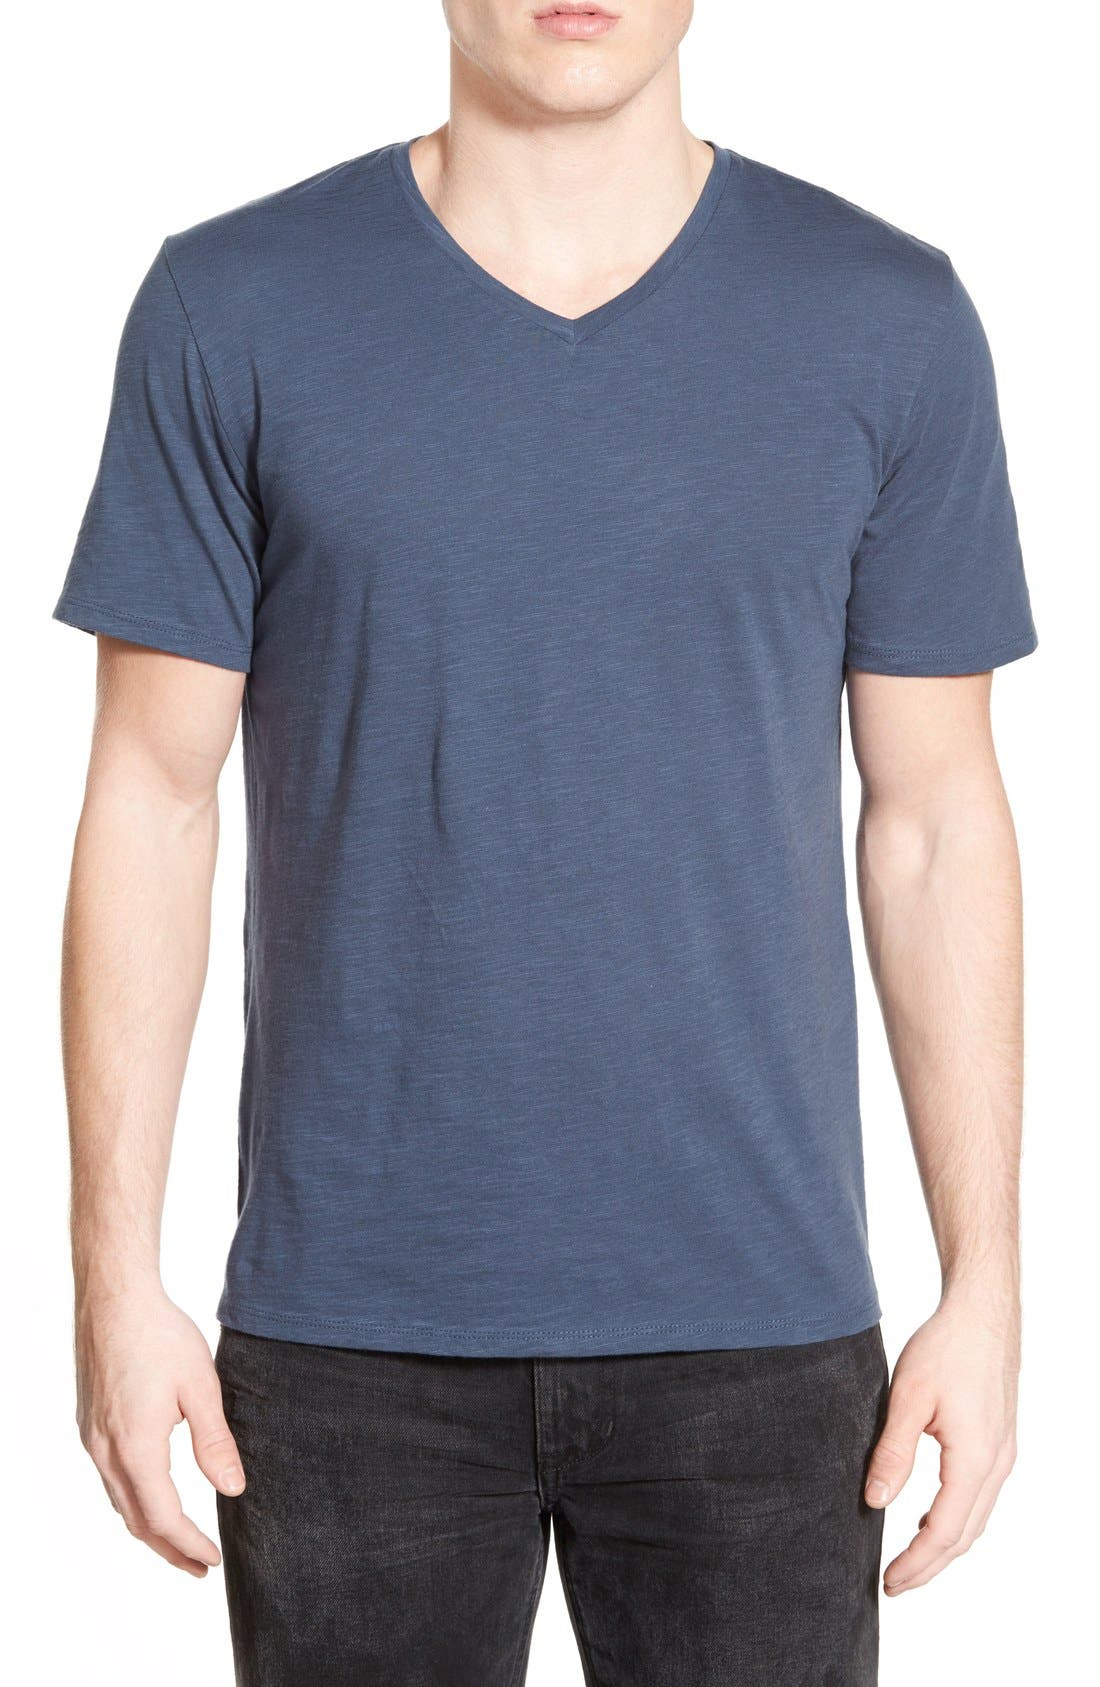 Main Image - The Rail Slub Cotton V-Neck T-Shirt